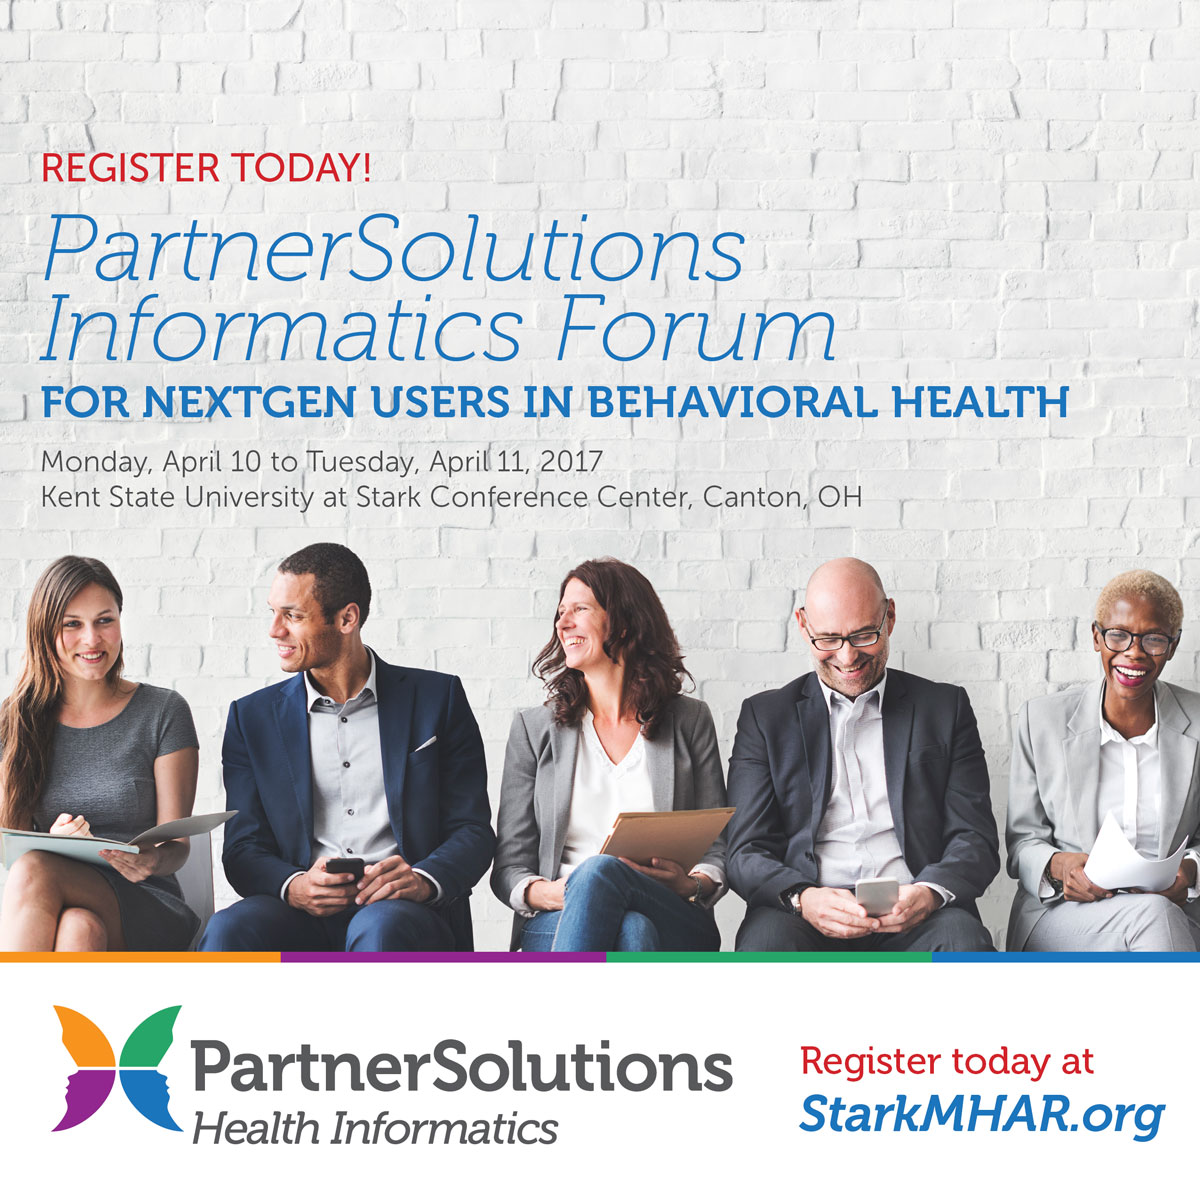 PartnerSolutions Health Informatics Forum for NextGen Users in Behavioral Health @ Kent State University at Stark Conference Center | North Canton | Ohio | United States